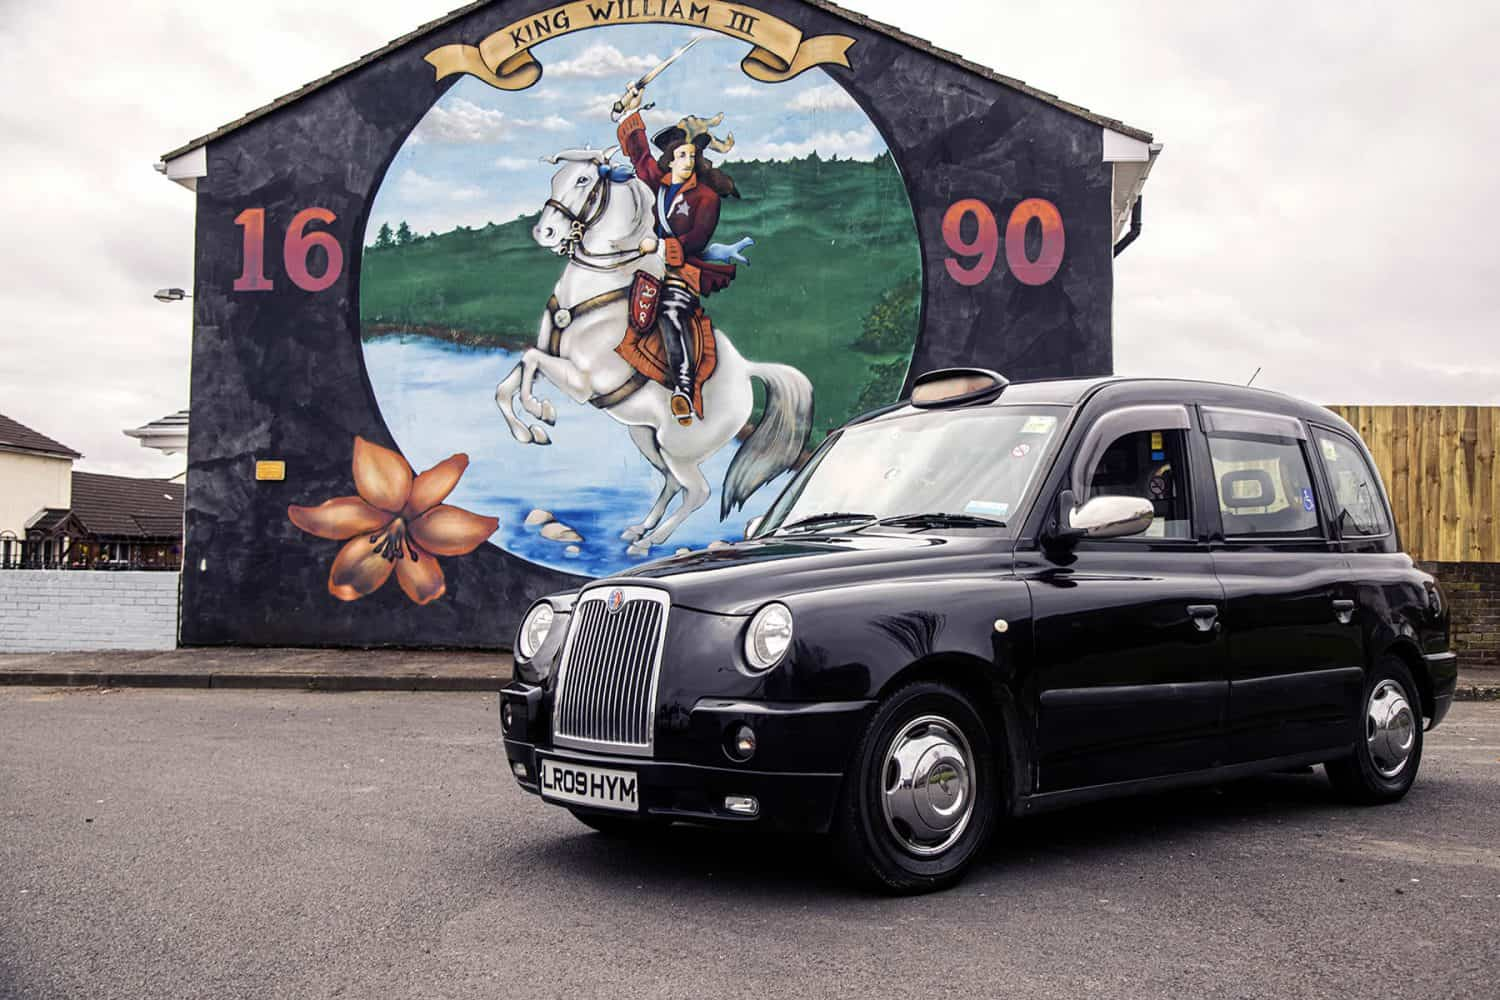 Belfast Mural Tours taxi cab parked at King William Mural in Shankill Belfast